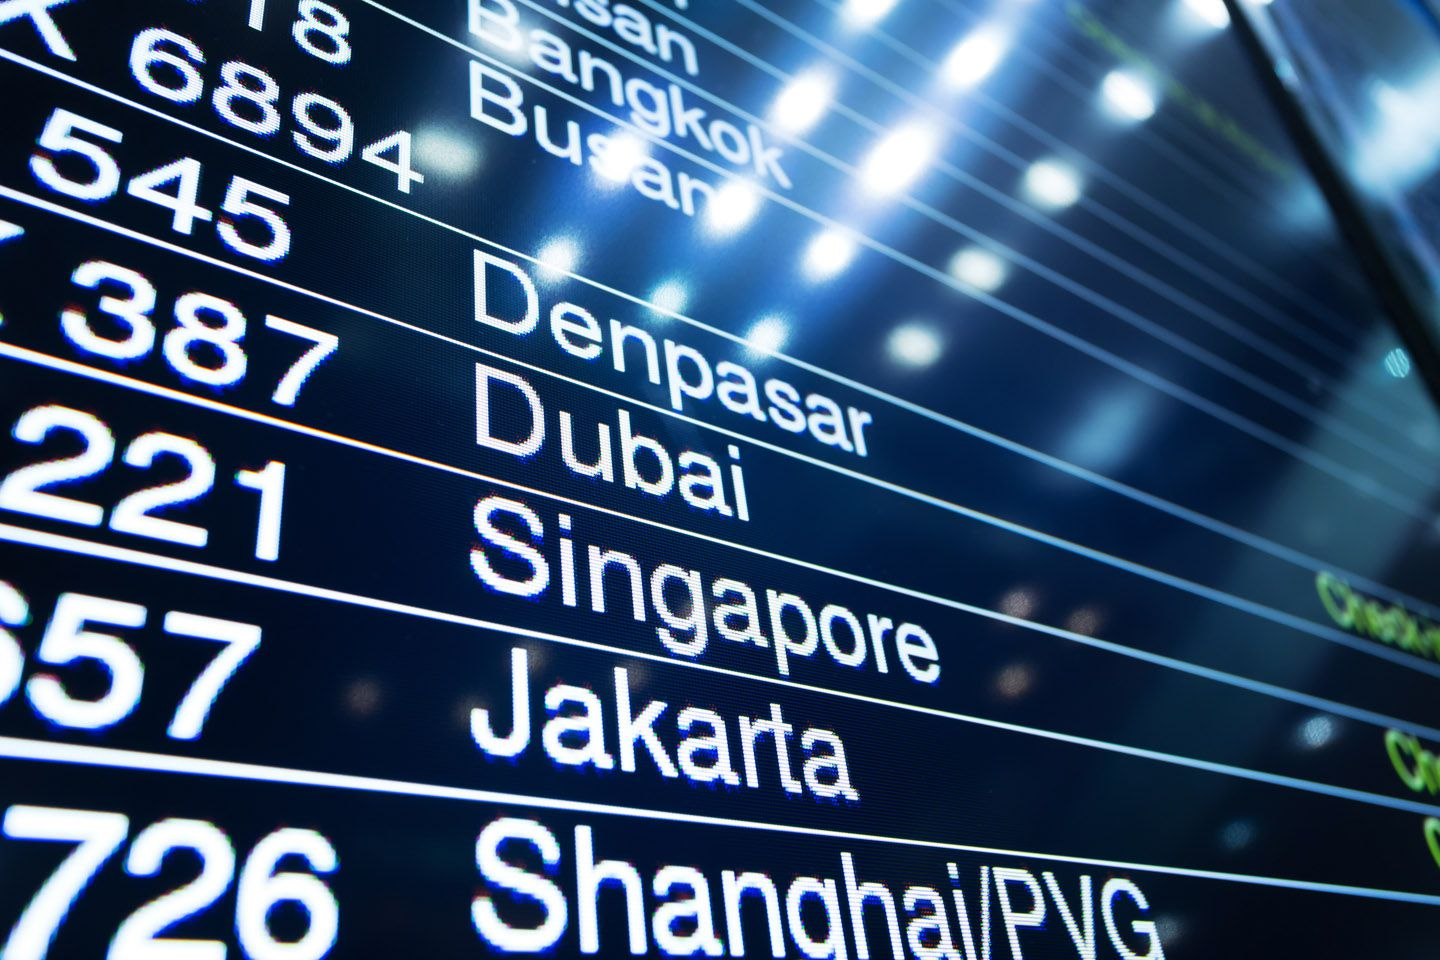 Airasia Airlines Flights And Tickets Web Promo Airasia Website